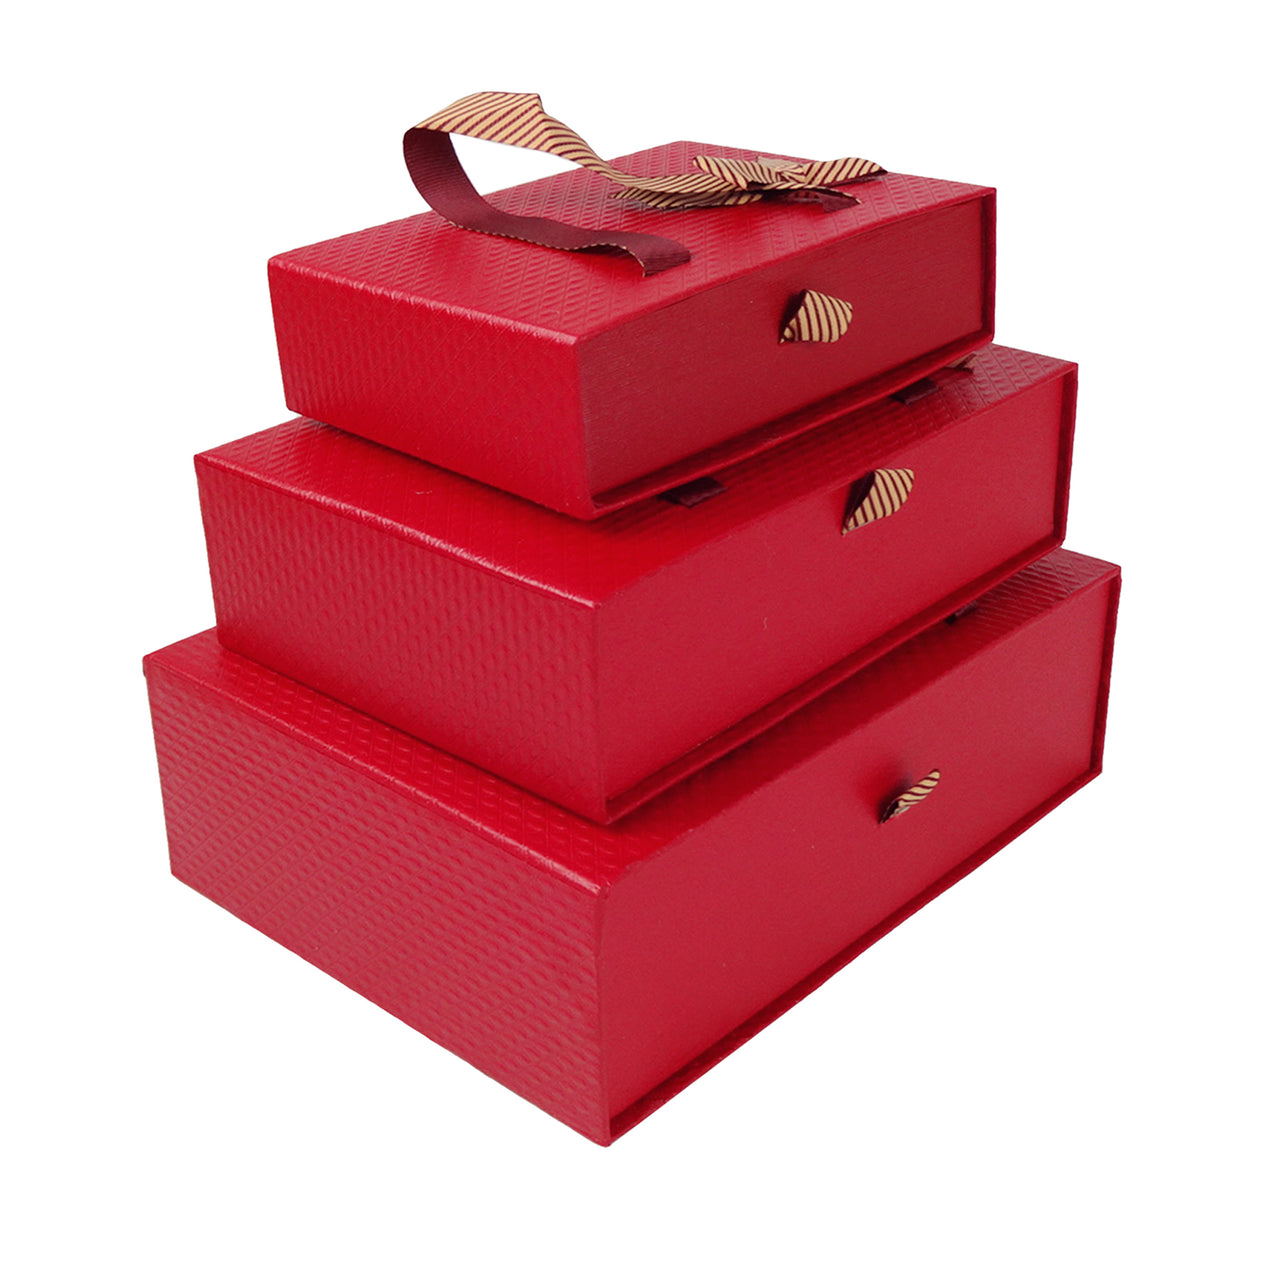 Red Textured Gift Box - Set Of 3